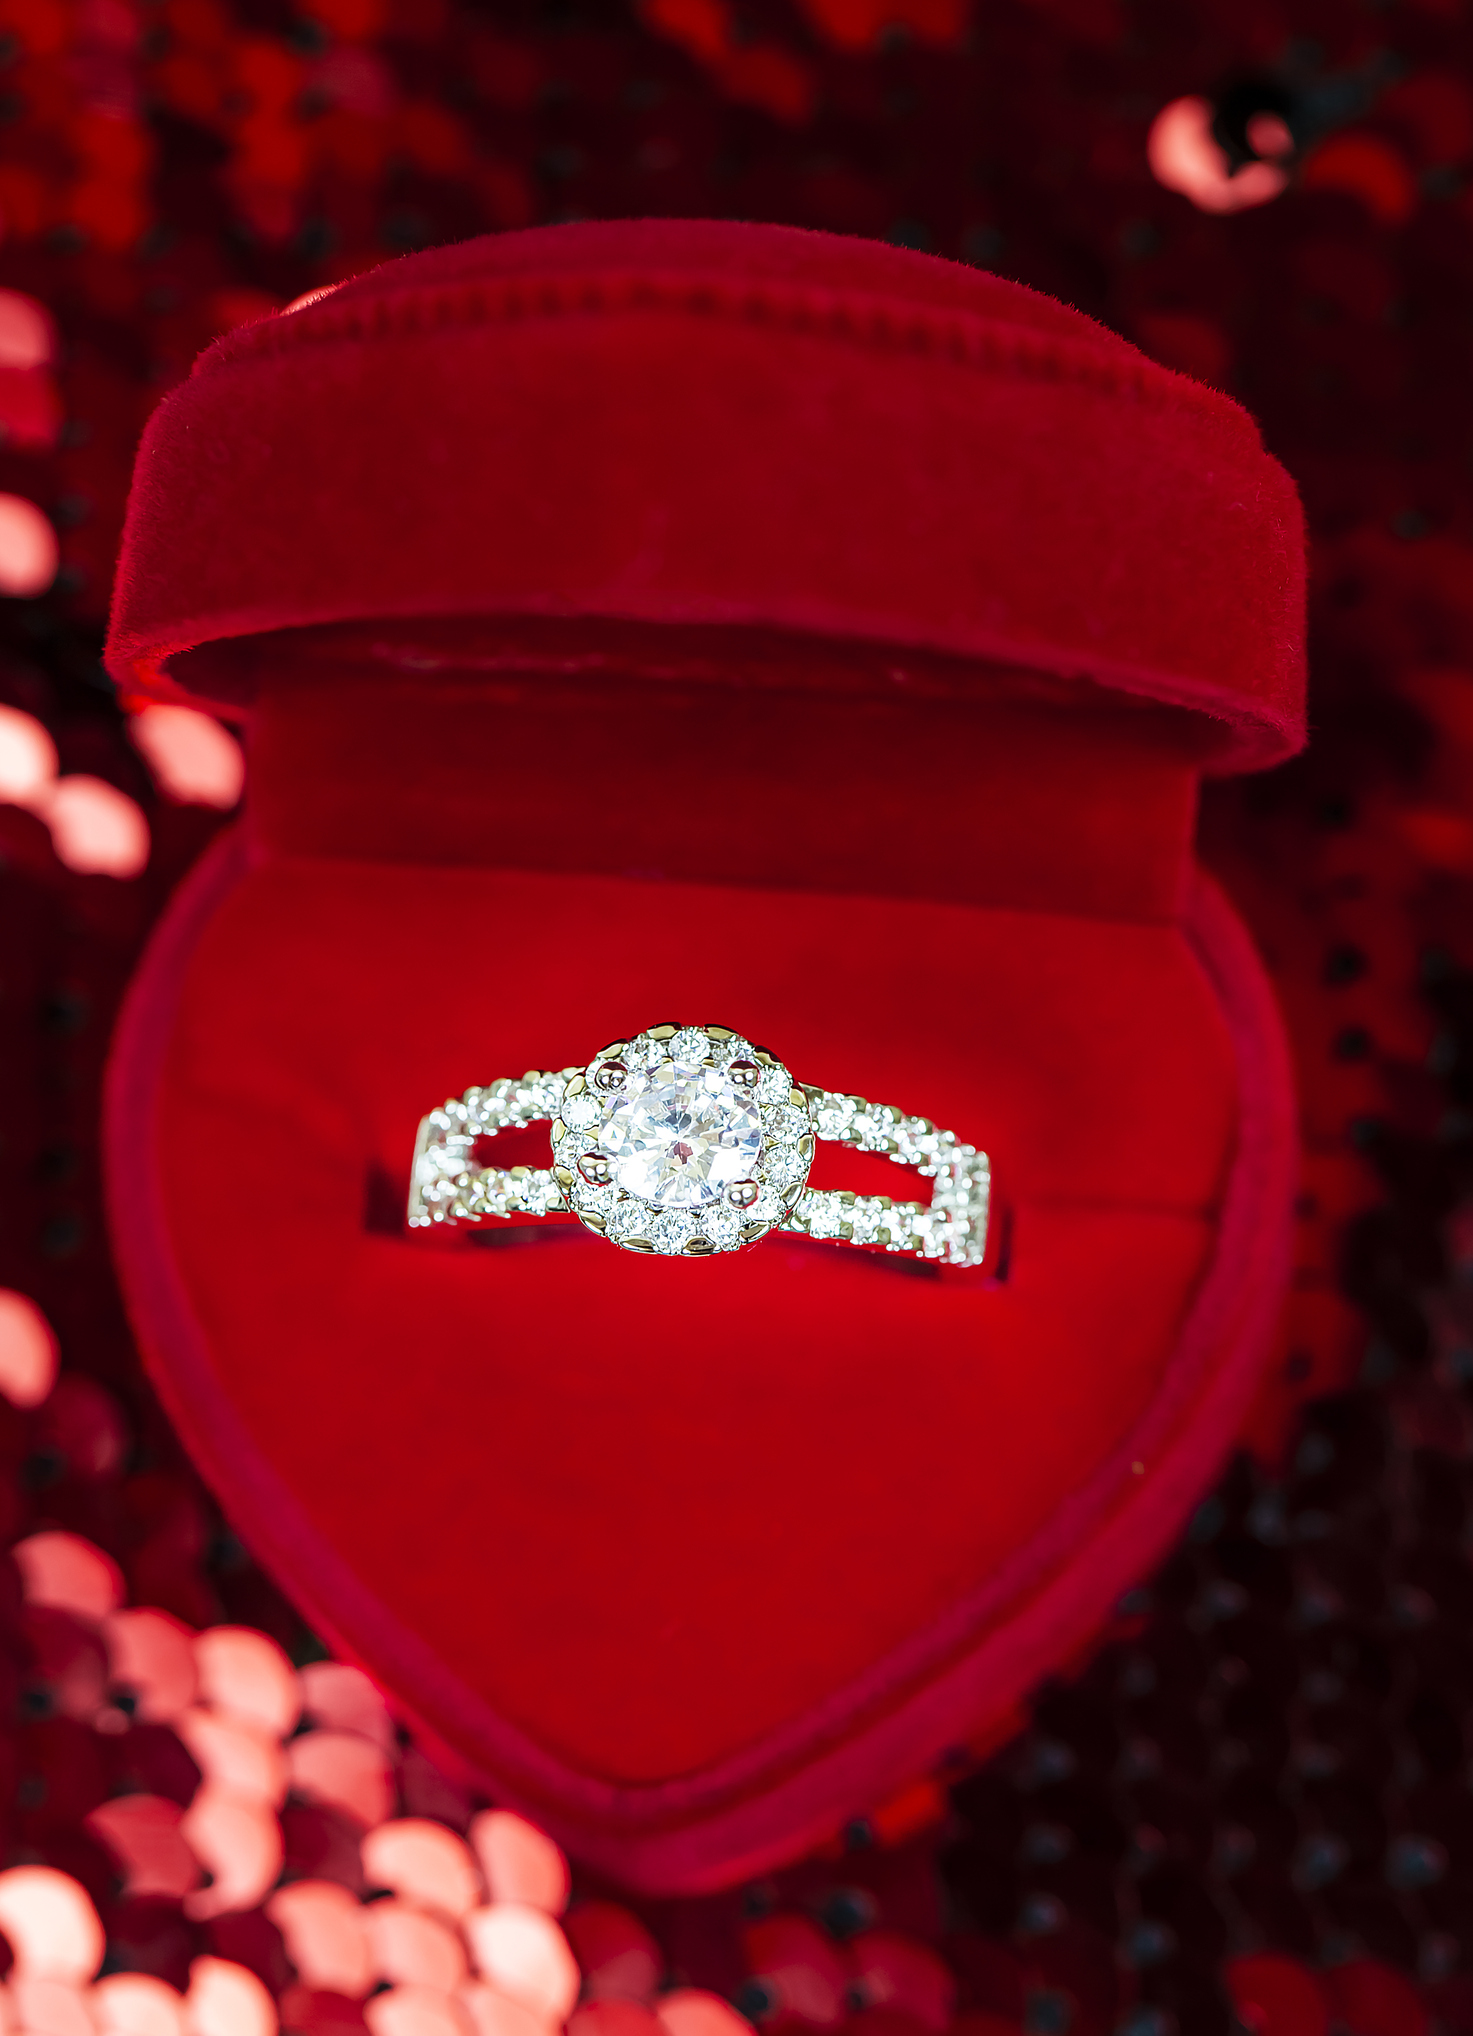 Close-Up Of Engagement Diamond Ring In Red Jewelry Box